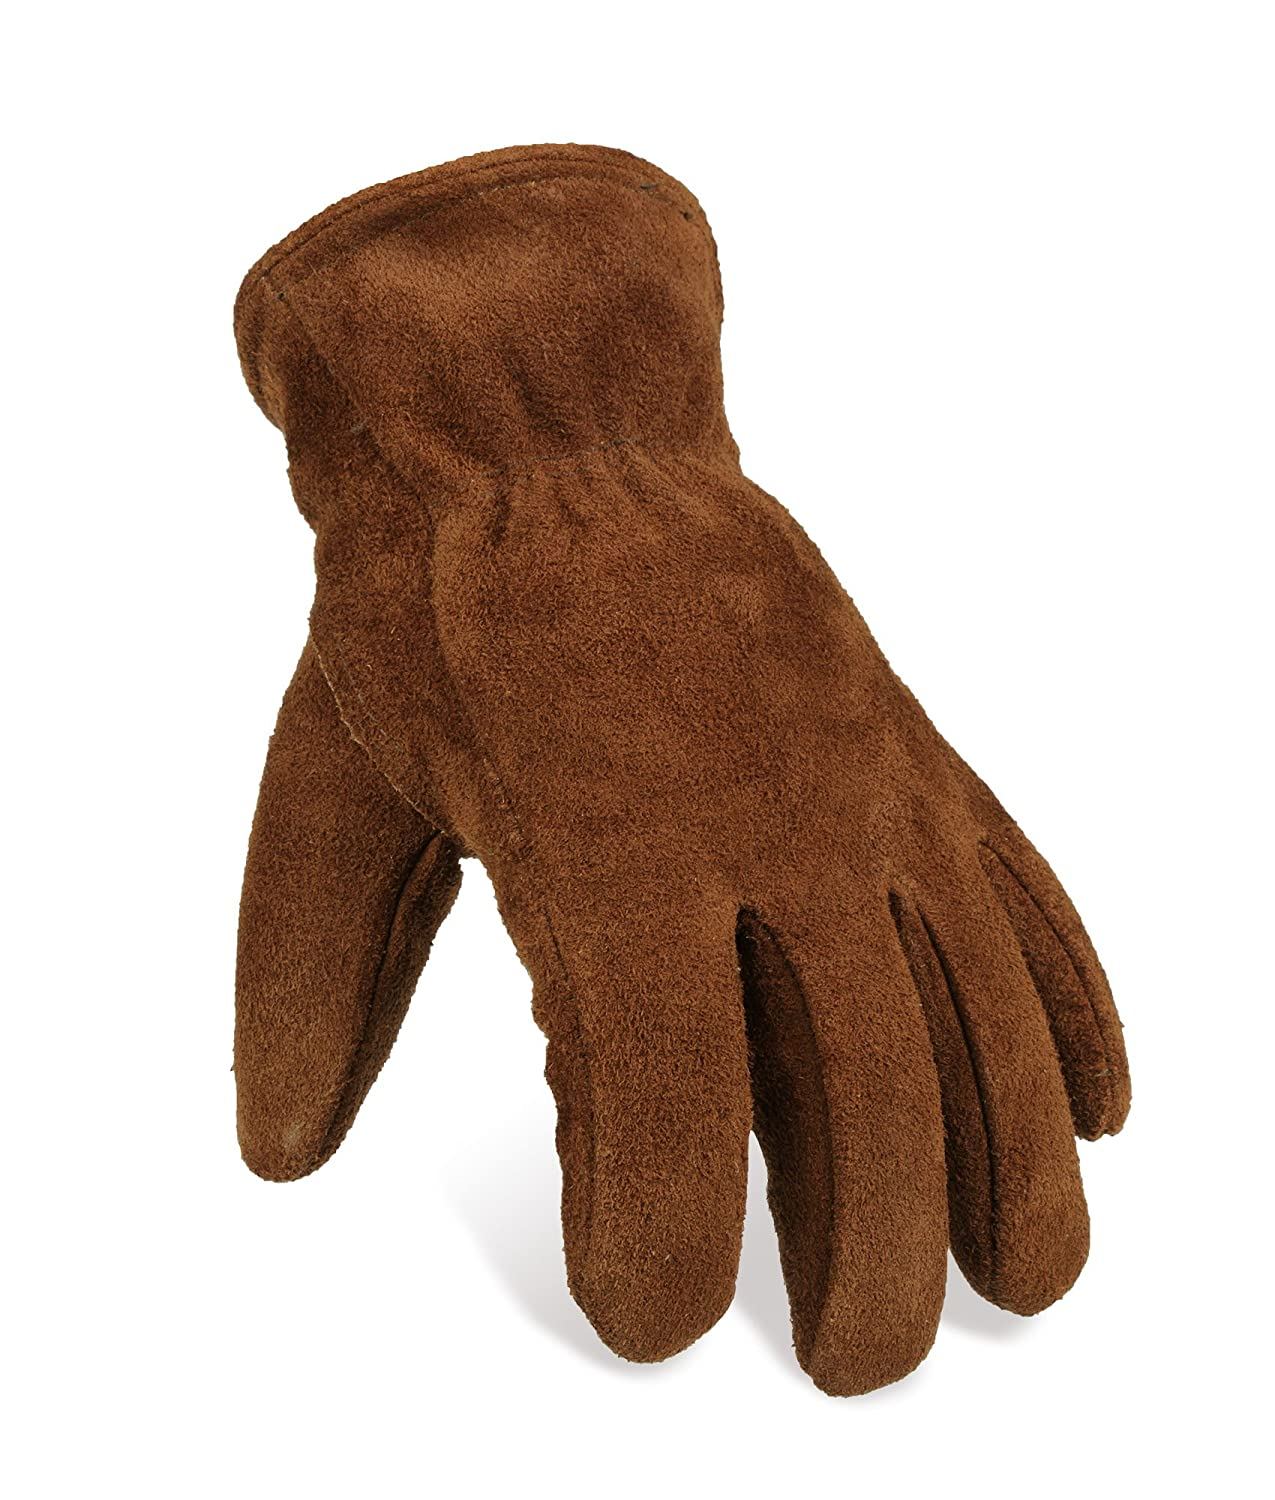 OZERO Insulated Gloves Cold Proof Leather Winter Work Glove Thick Thermal Imitation Lambswool - Extra Grip, Flexible and Warm for Working in Cold Weather for Men and Women (Brown,Large) SHENZHEN HONGFUYA TRADE Co. Ltd